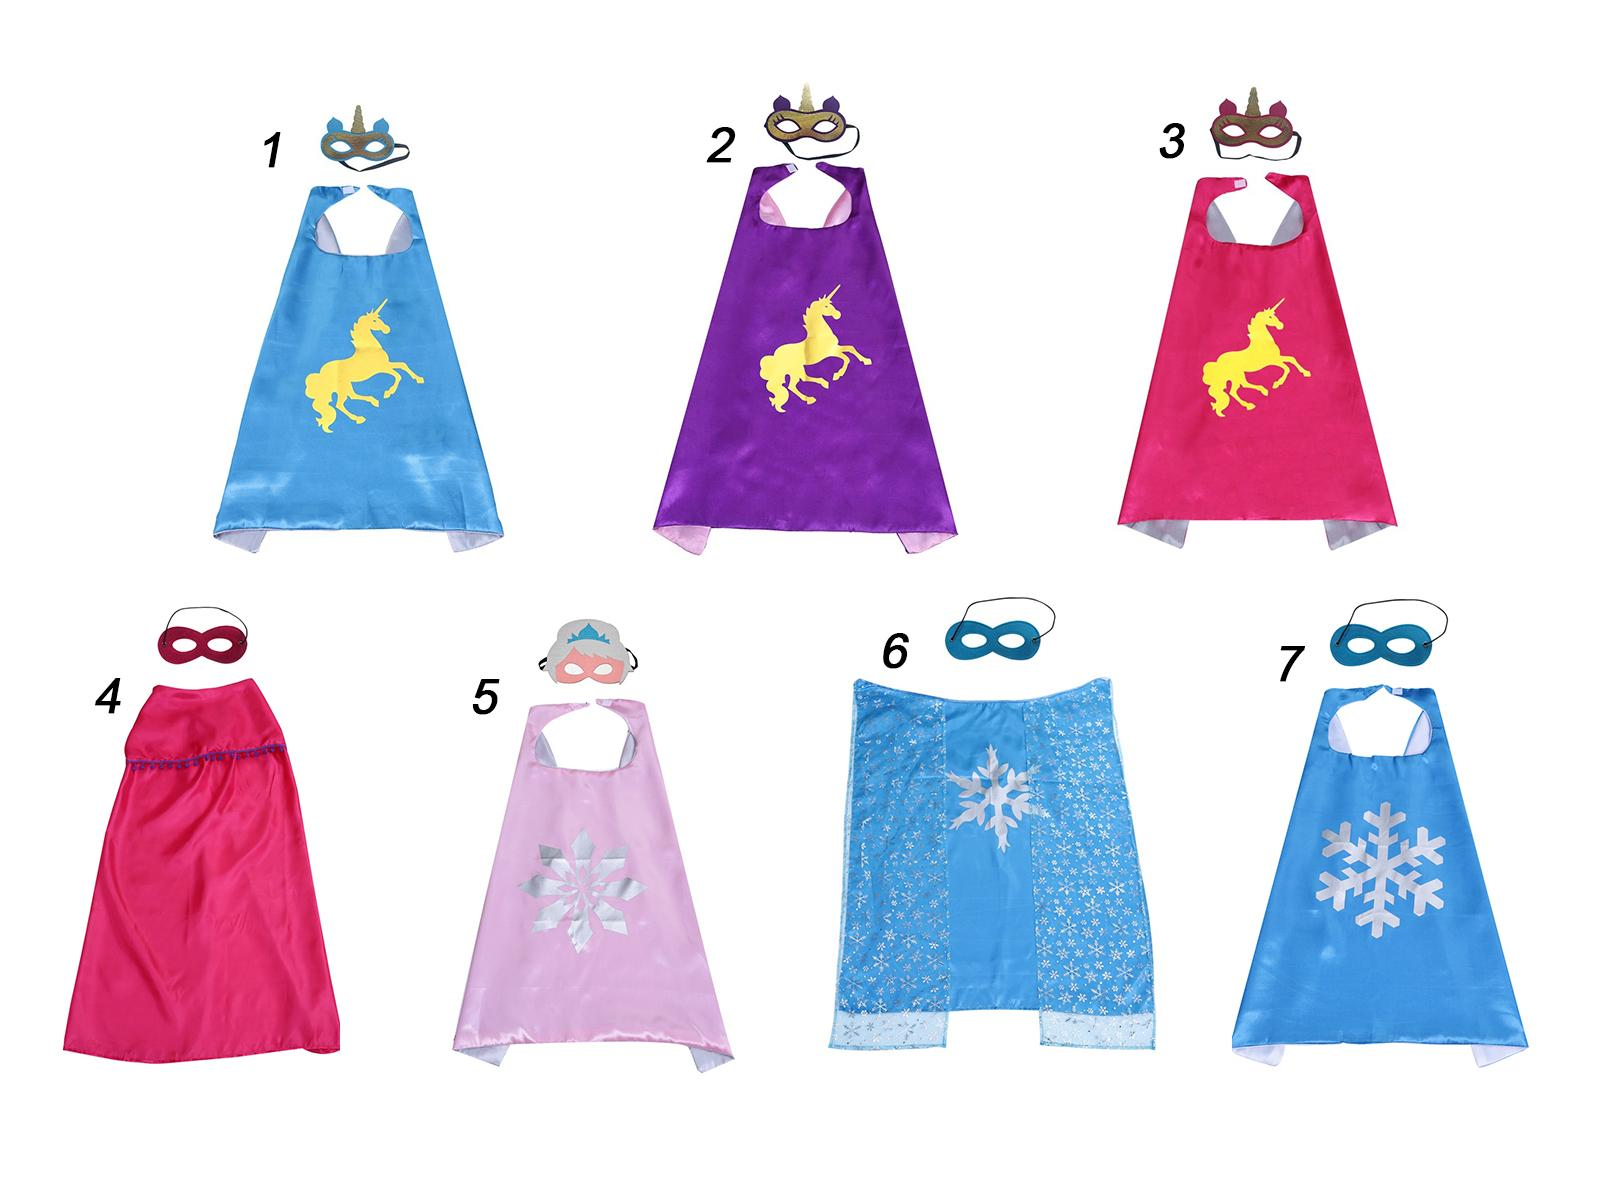 70*70cm double layer Satin cape with felt mask children carton costumes dressing up cosplay capes Kids clothes Party favors